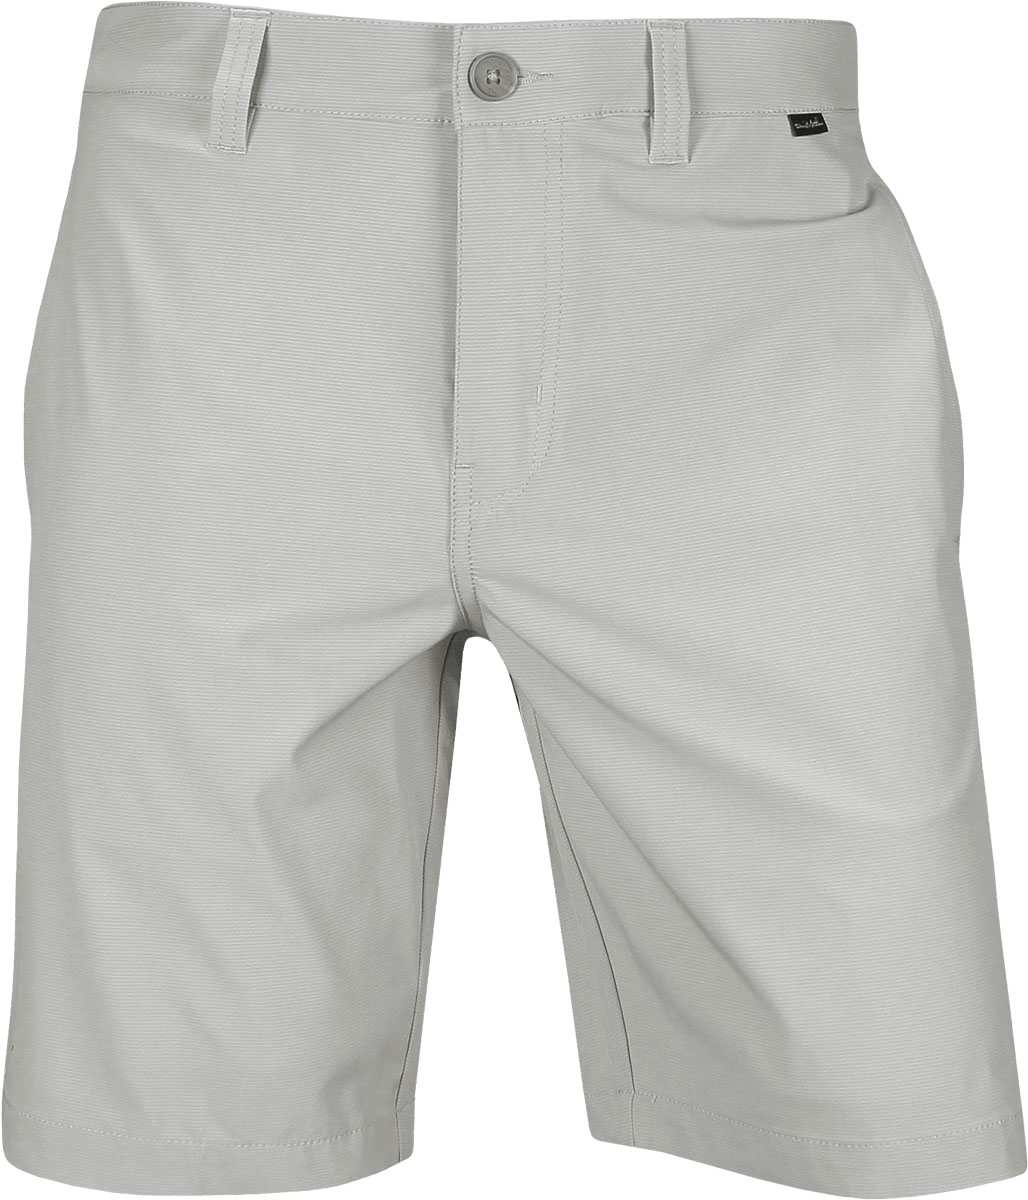 adidas golf shorts 9 inseam